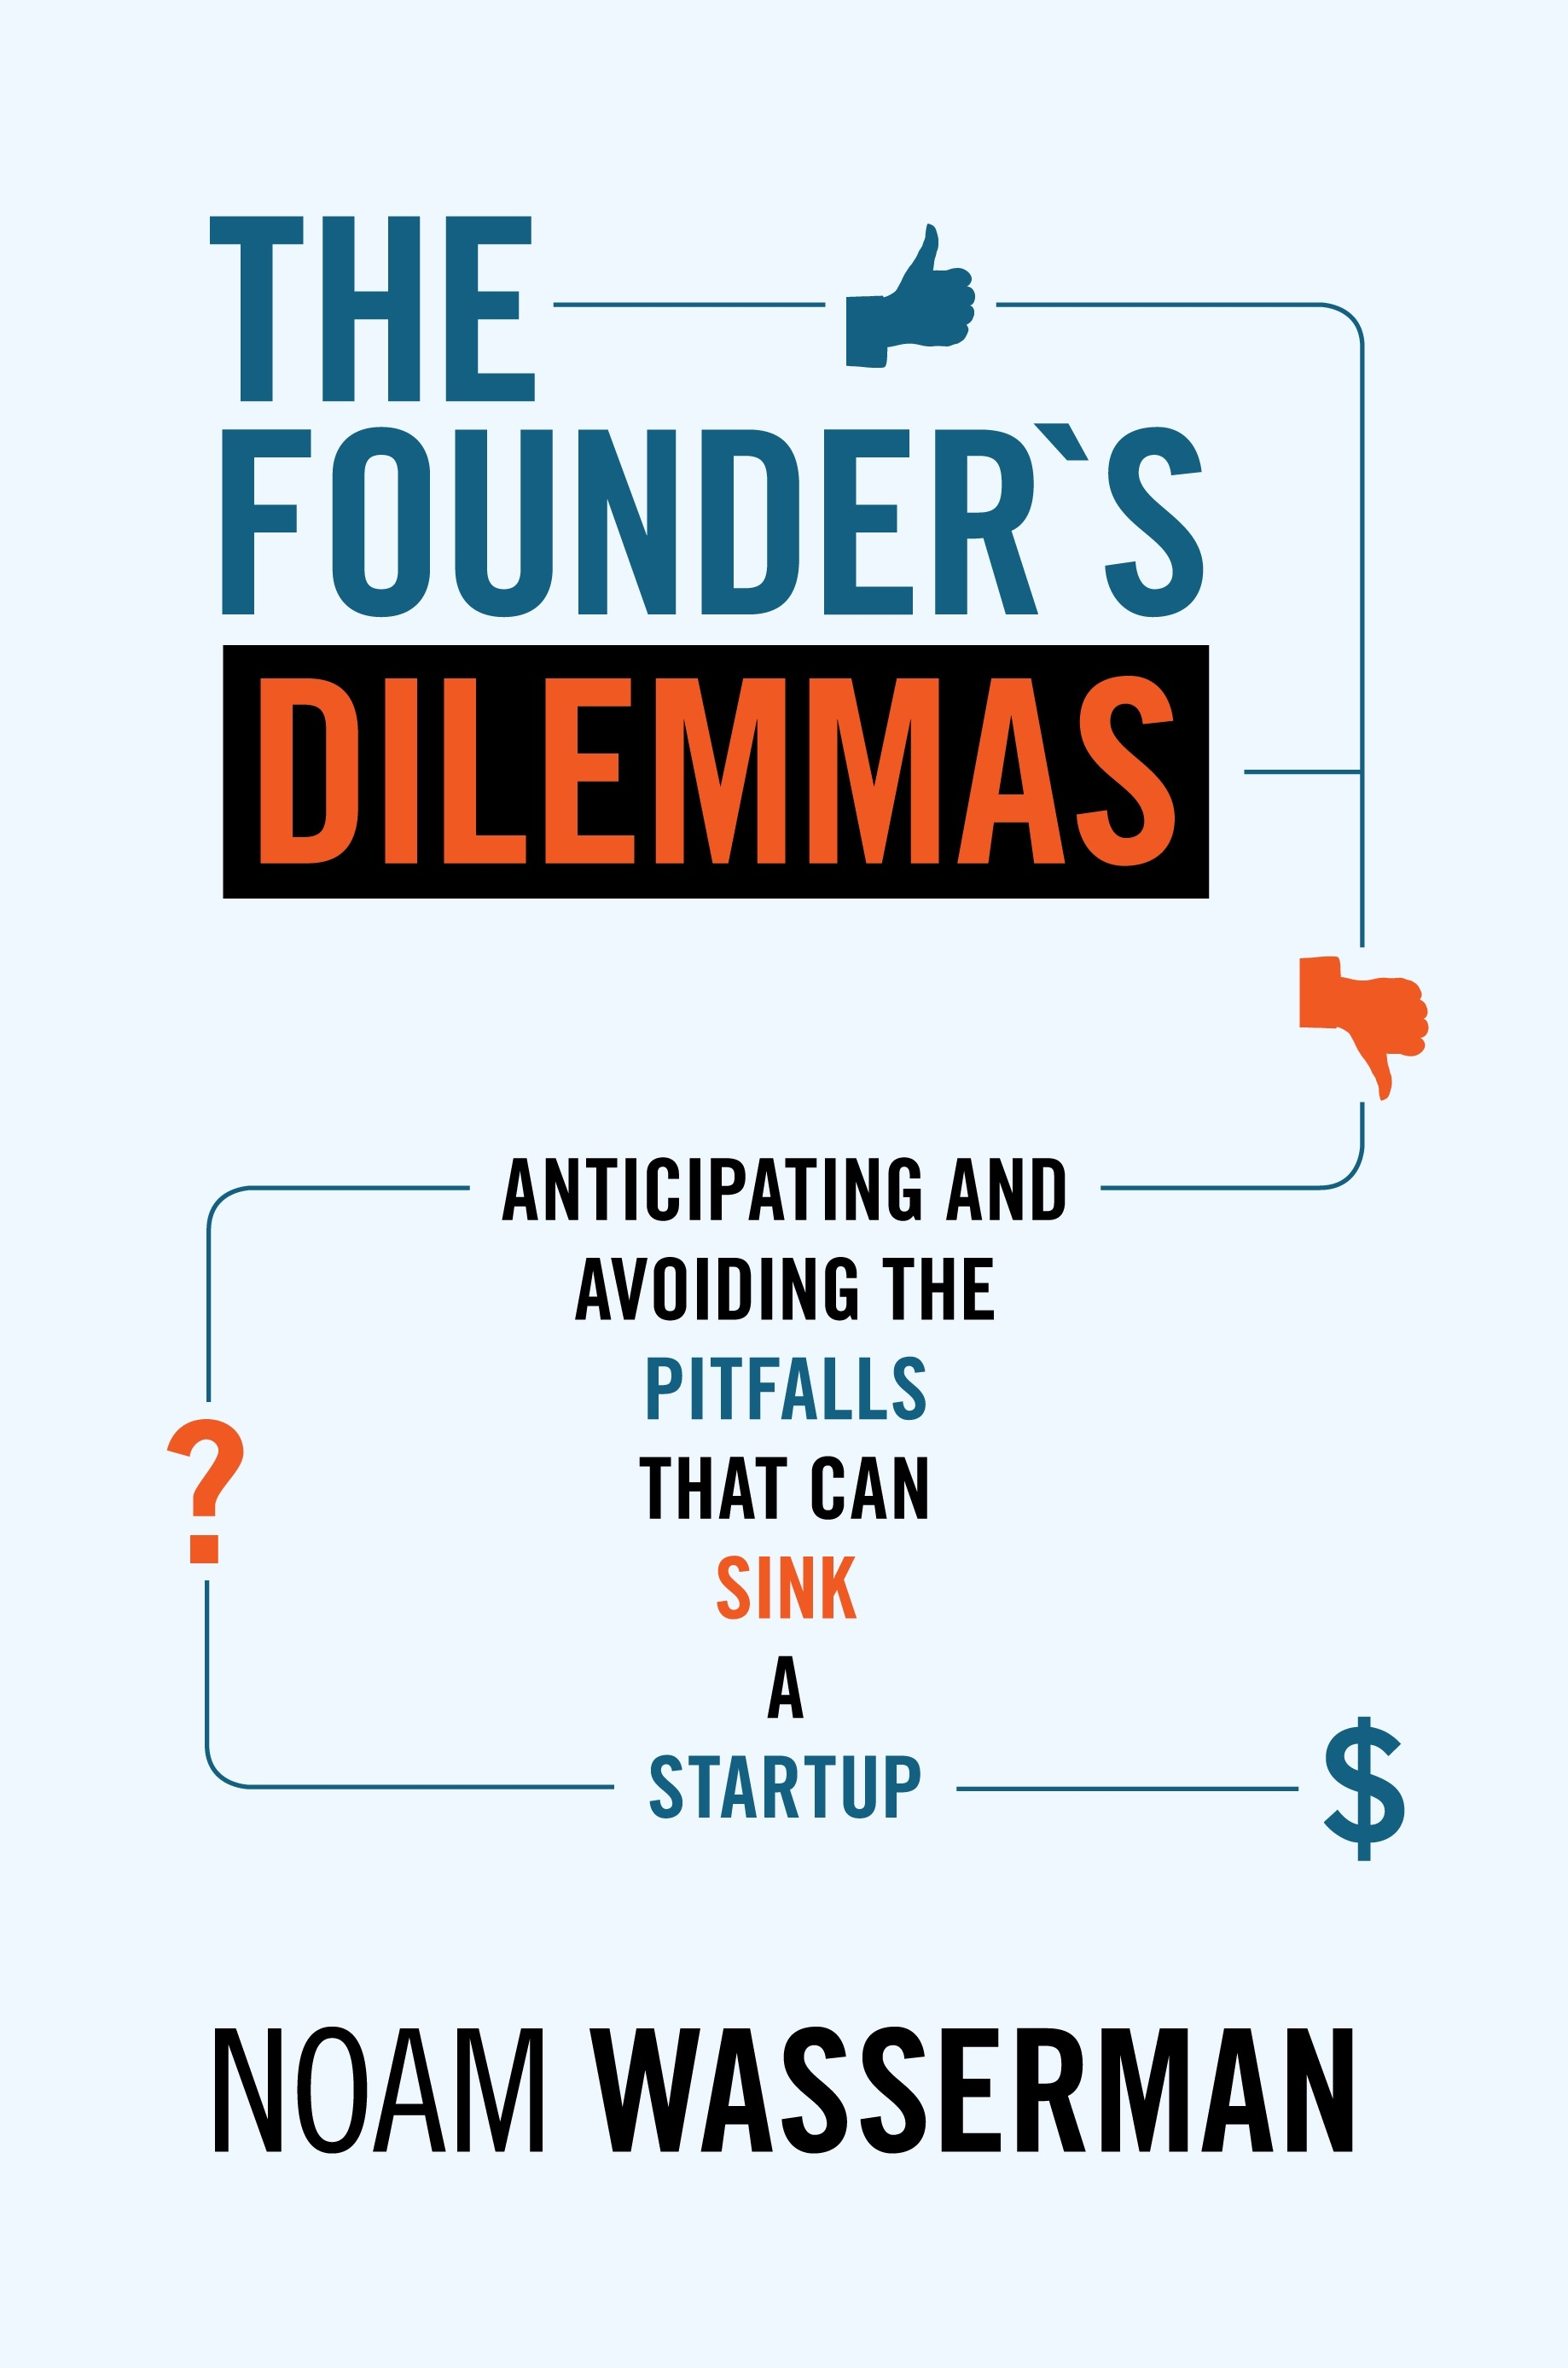 Book Cover of The Founder's Dilemmas